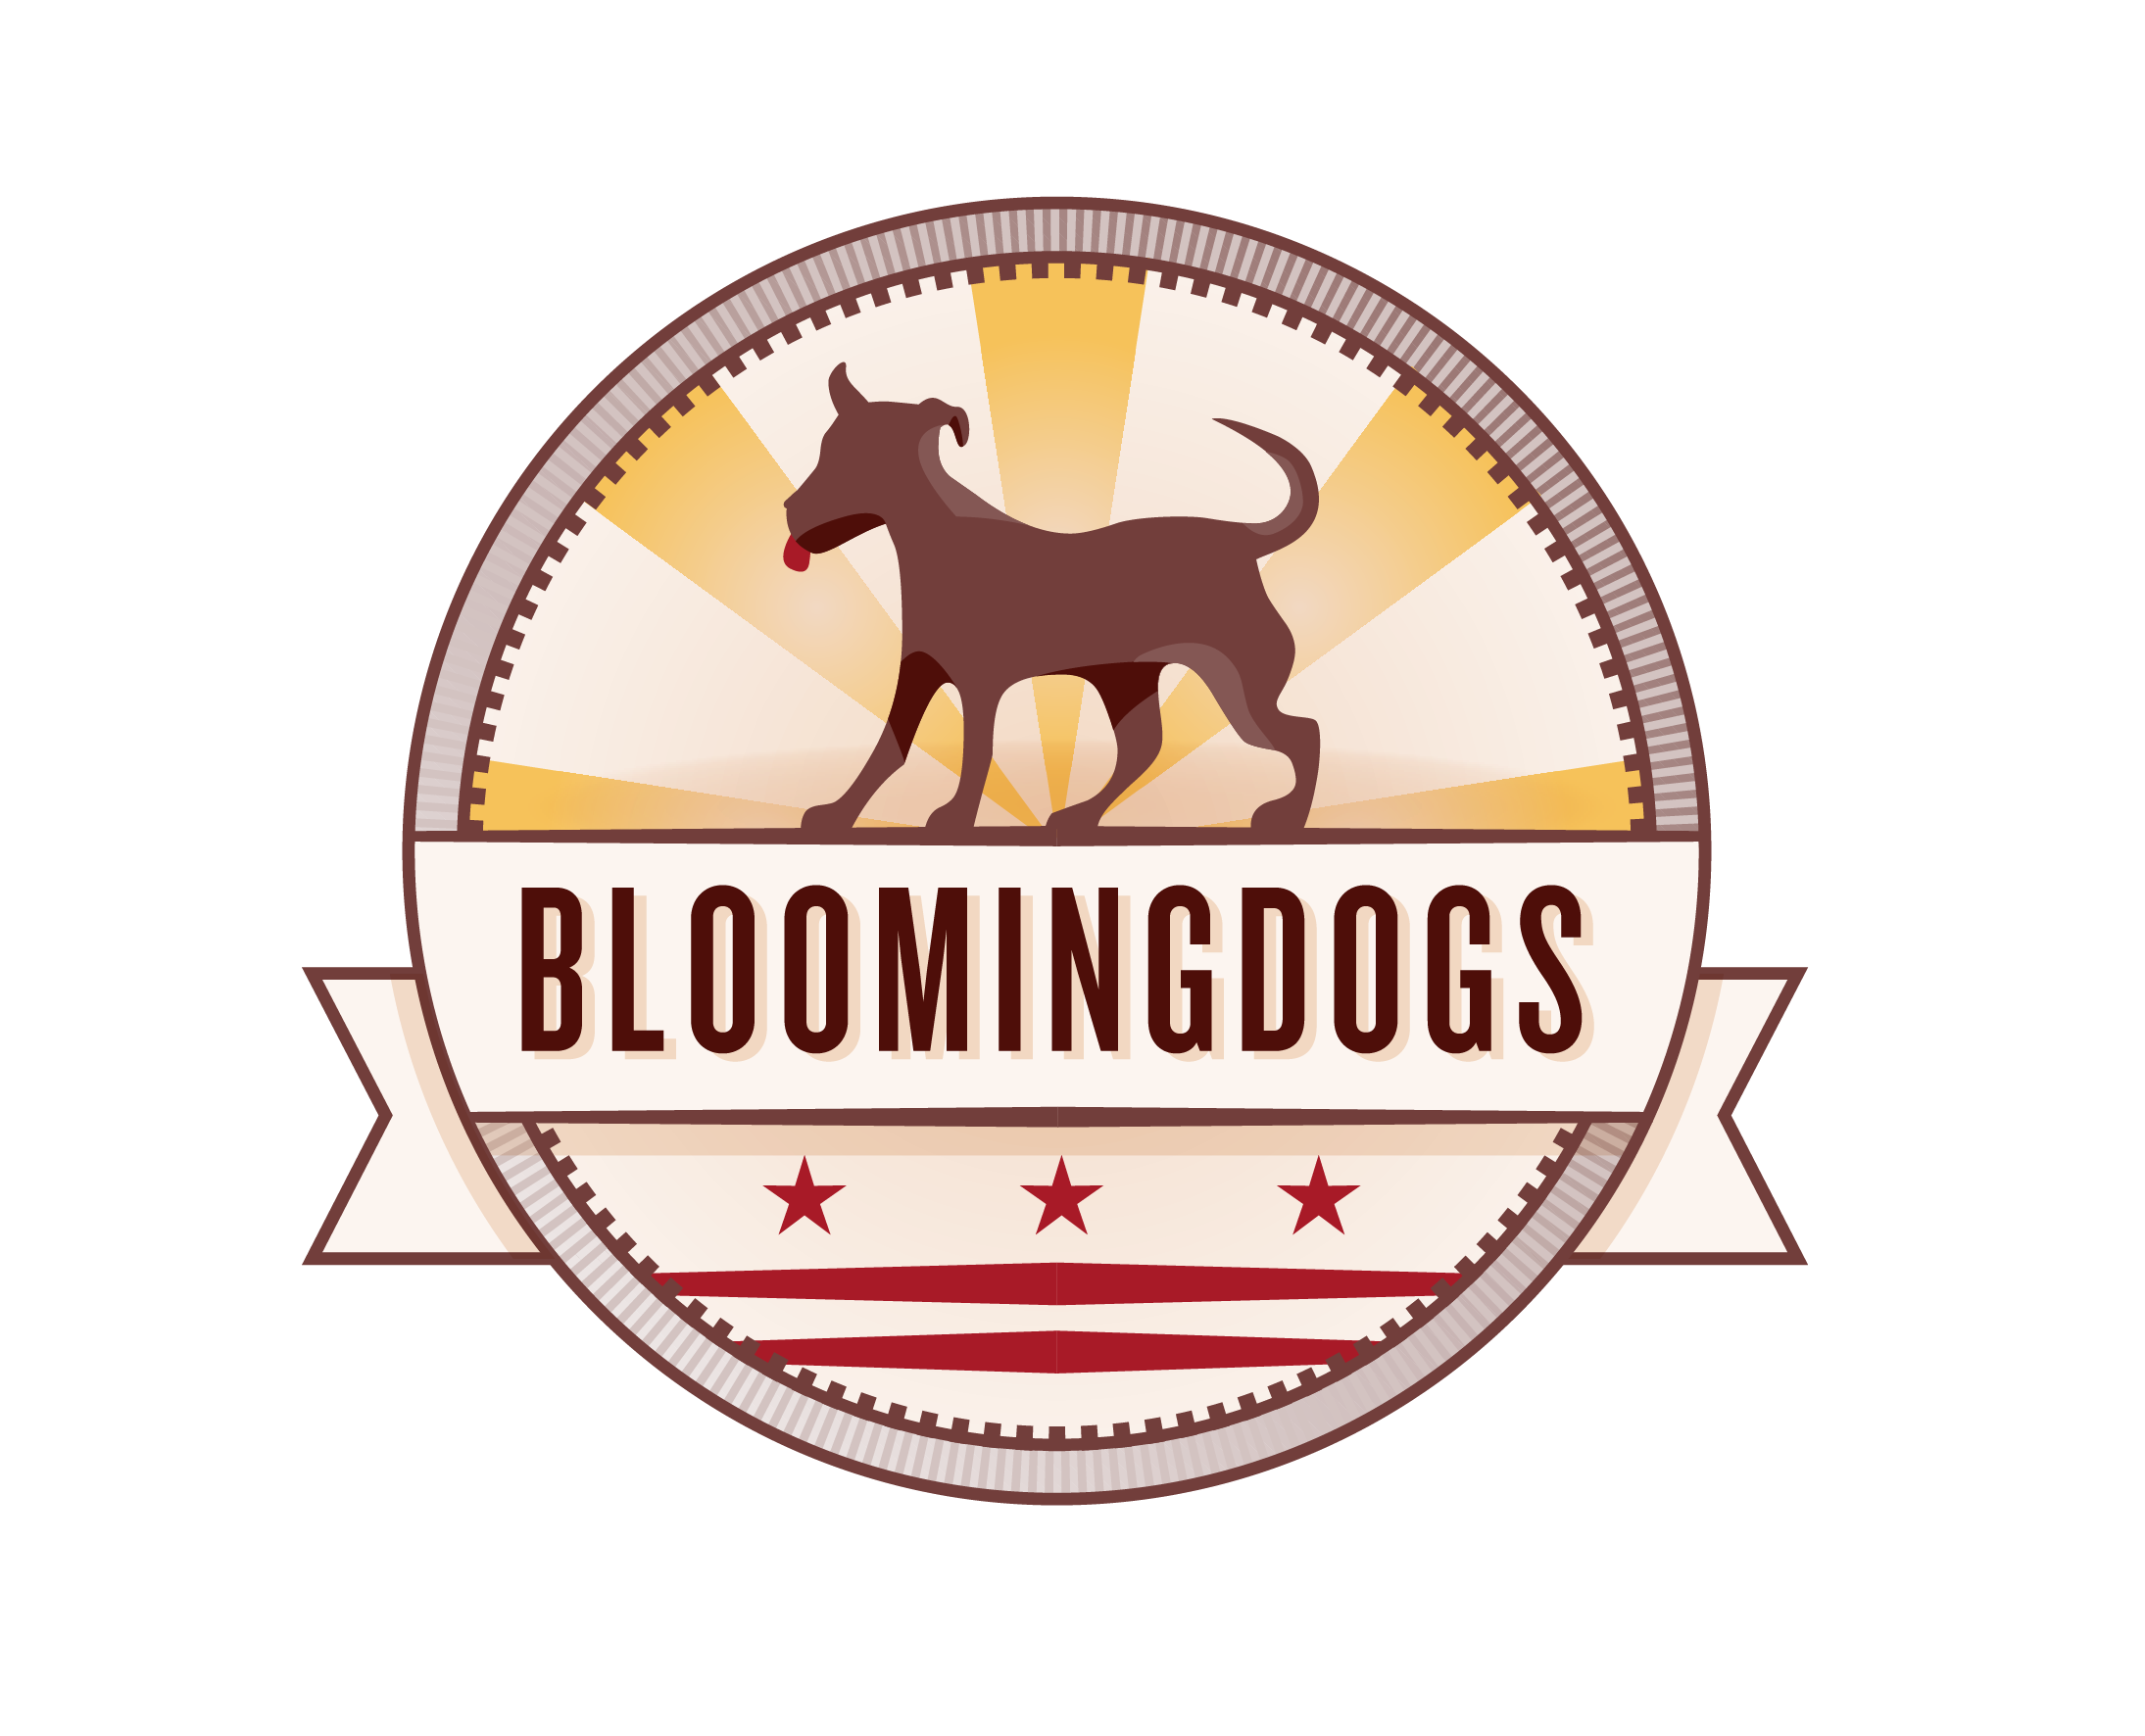 Bloomingdogs logo